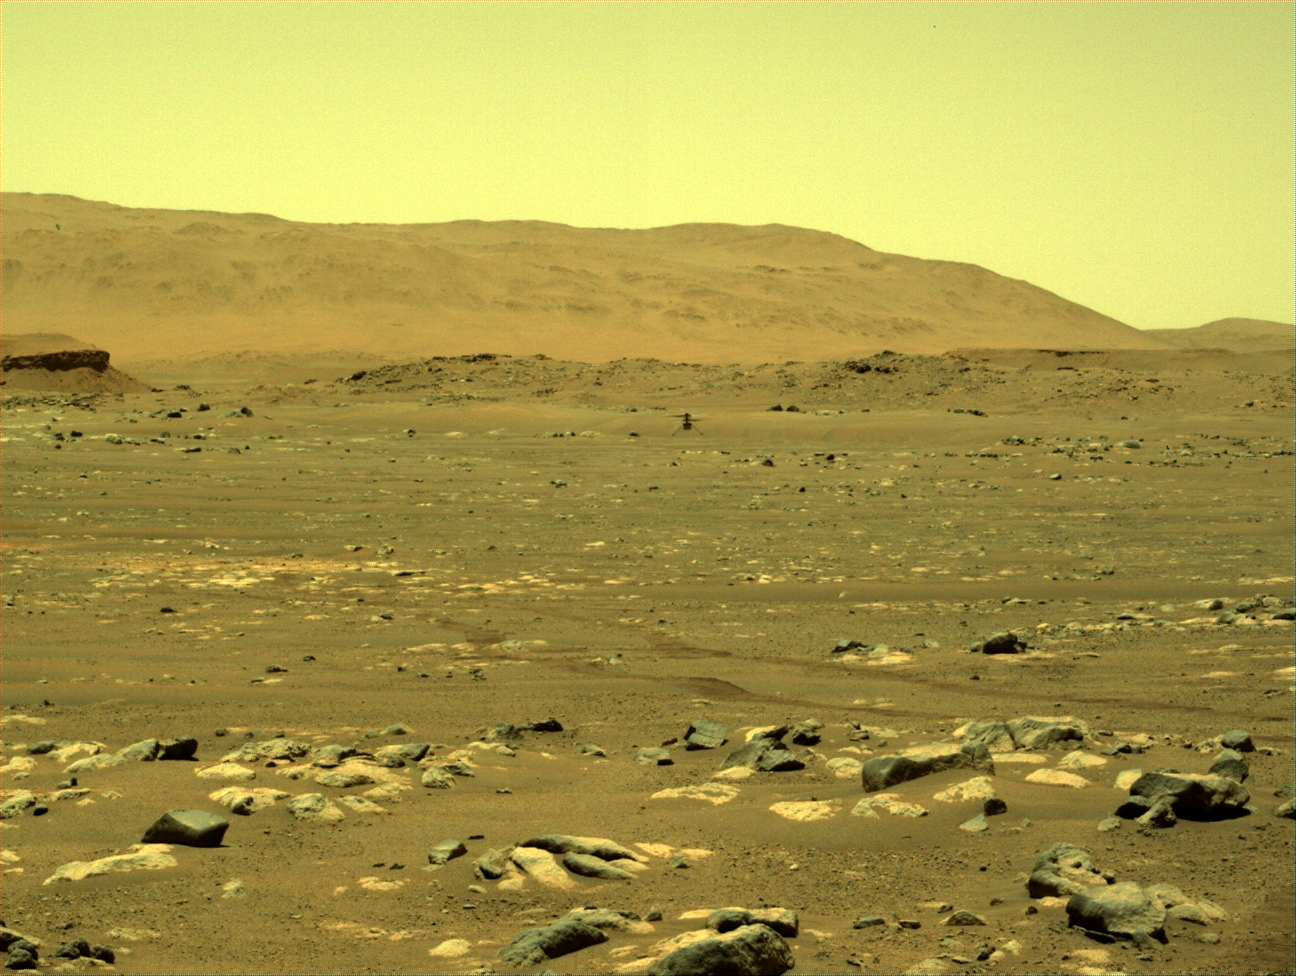 Ingenutiy hovering above the surface of Mars